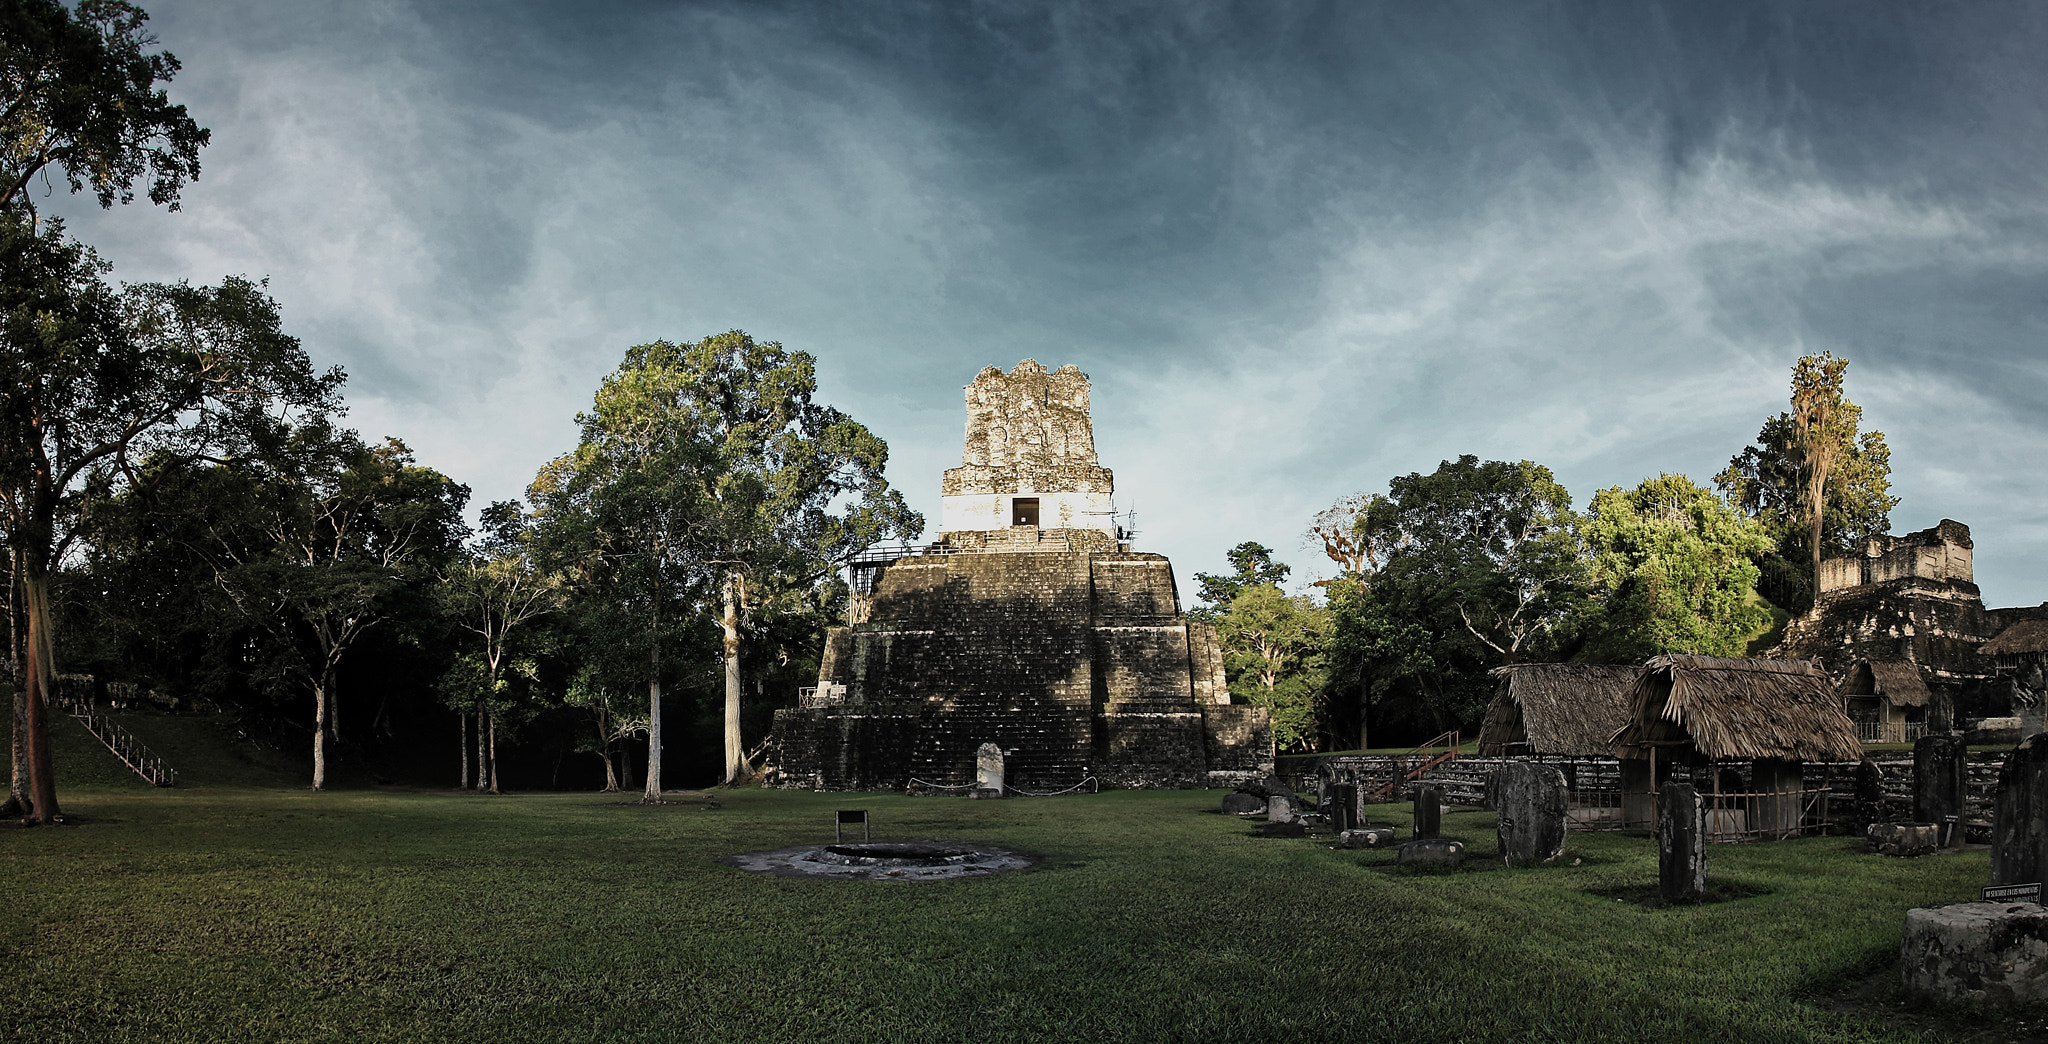 Photograph Tikal Guatemala by Stefan Traxinger on 500px